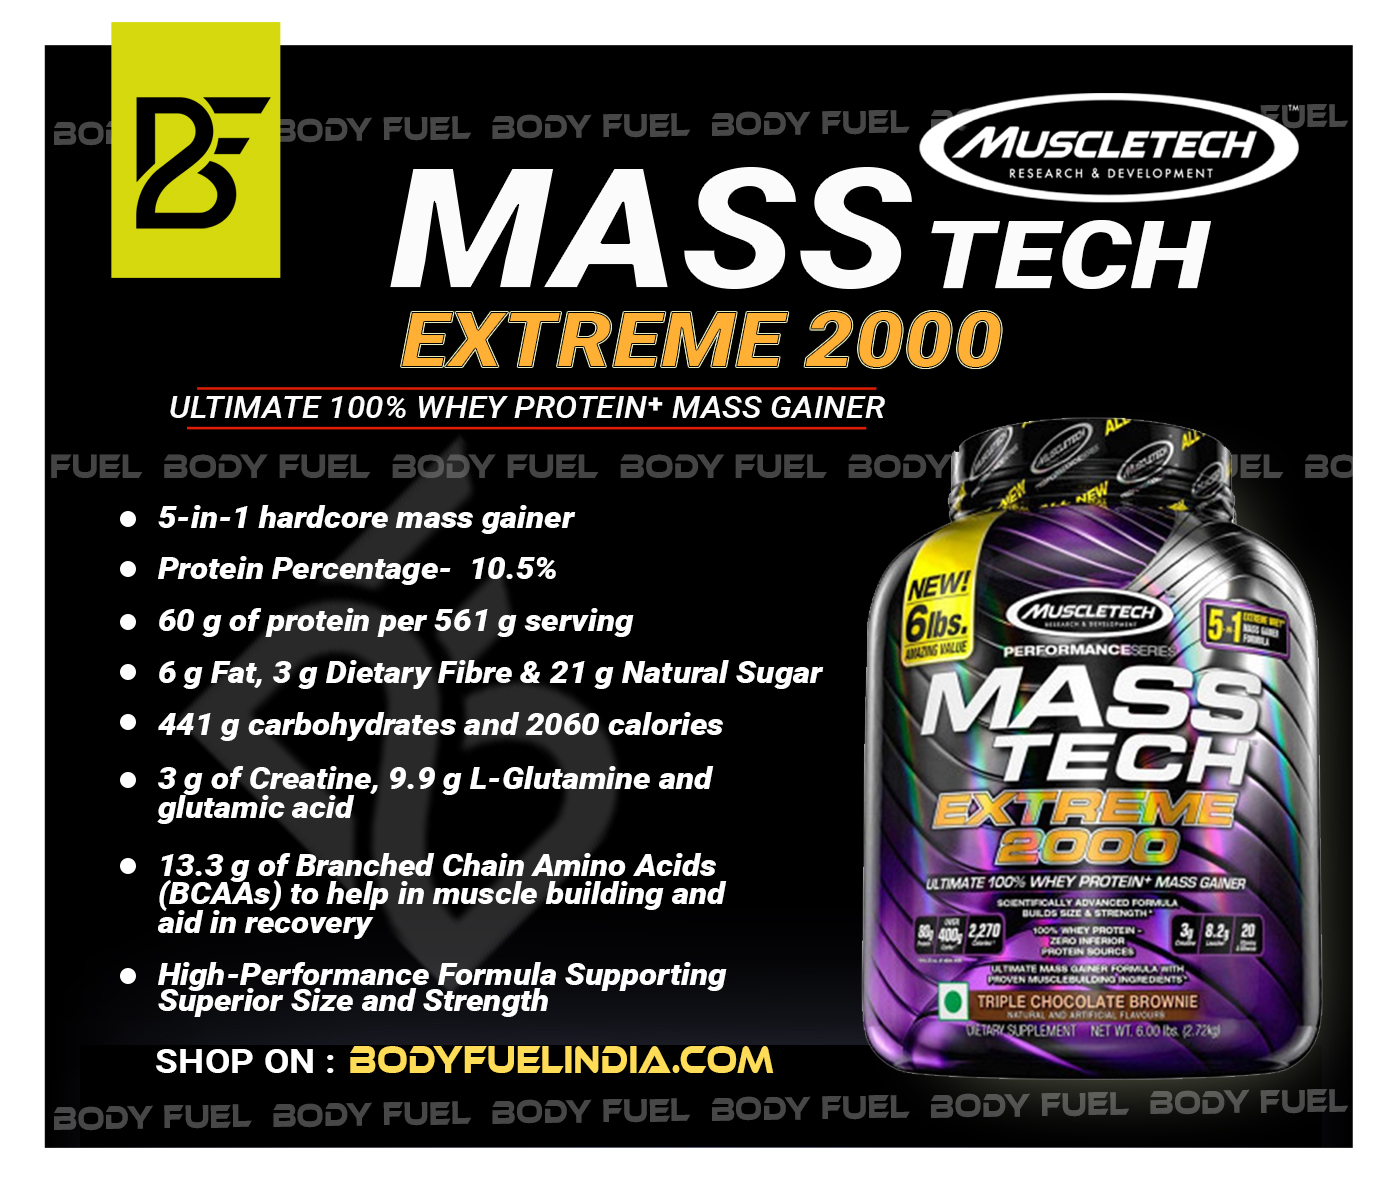 Muscletech Mass Tech Extreme 2000, Gainers, Body Fuel